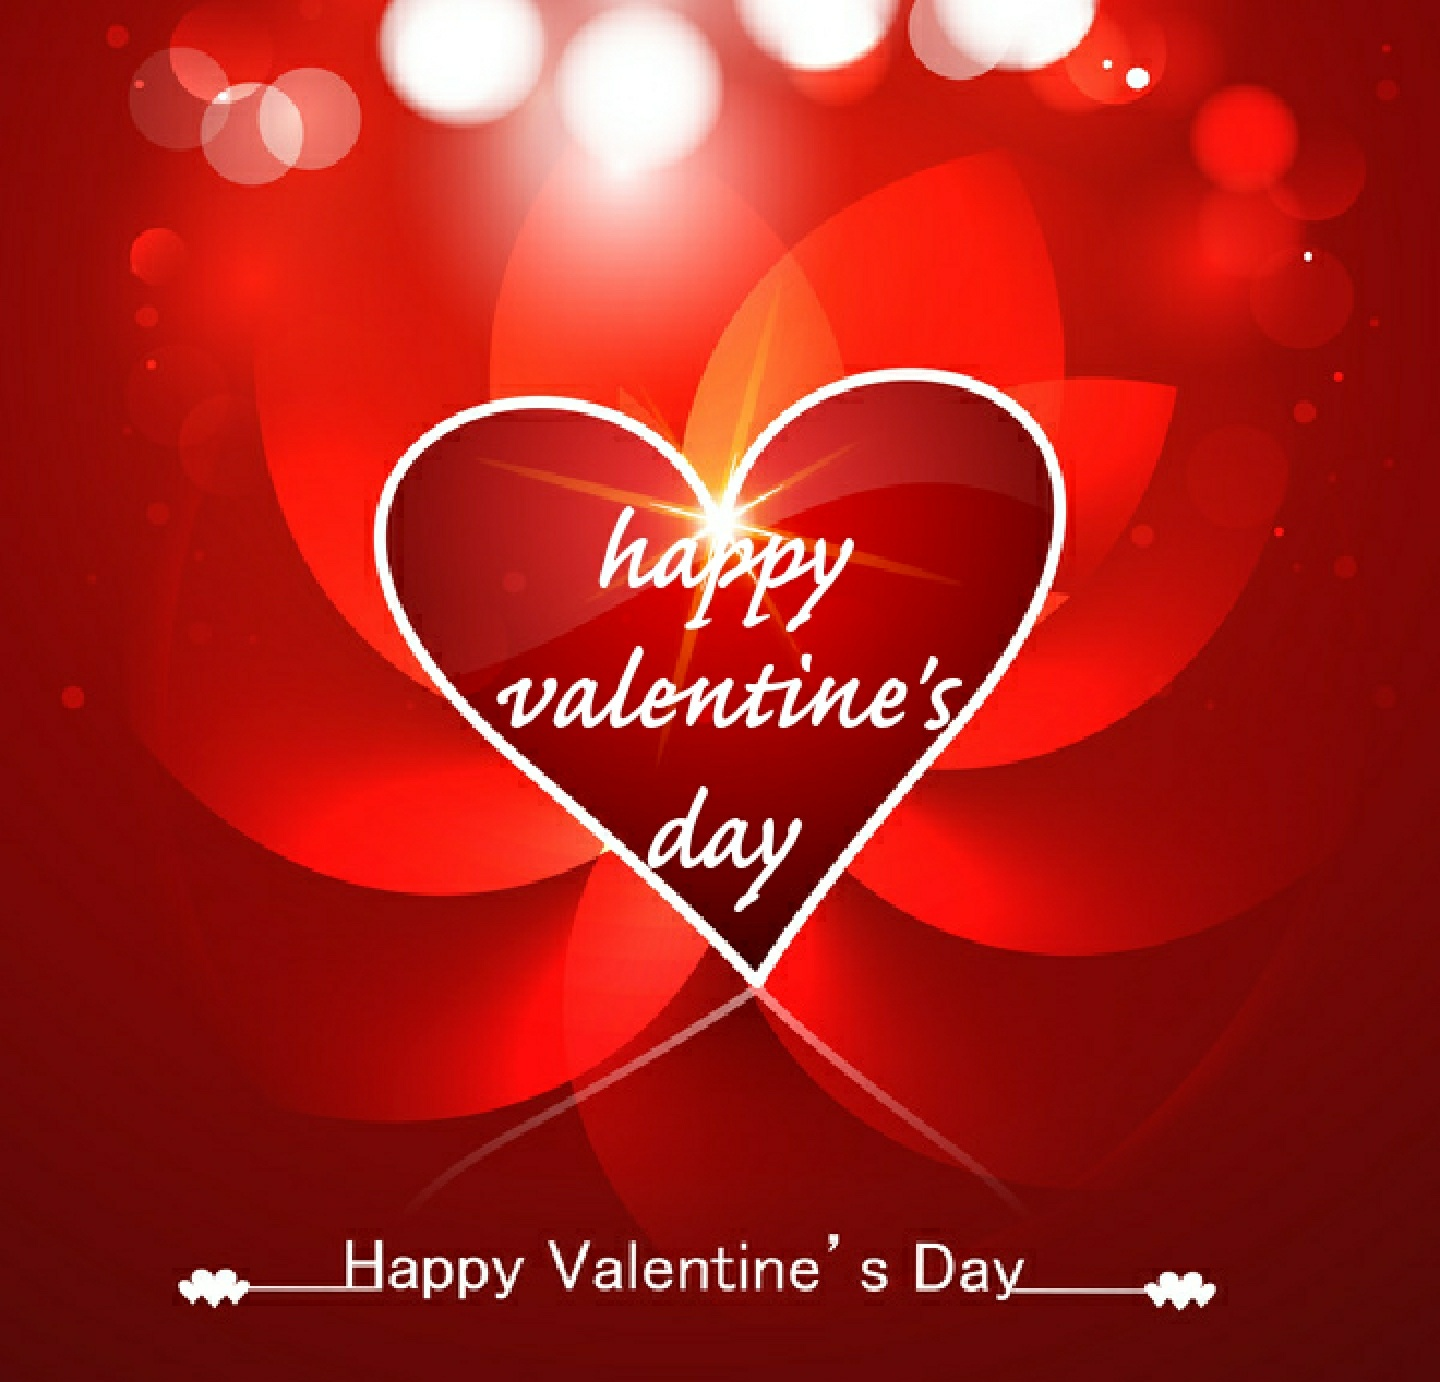 Top Christian Happy Valentines Day Images Hd Greetings Images